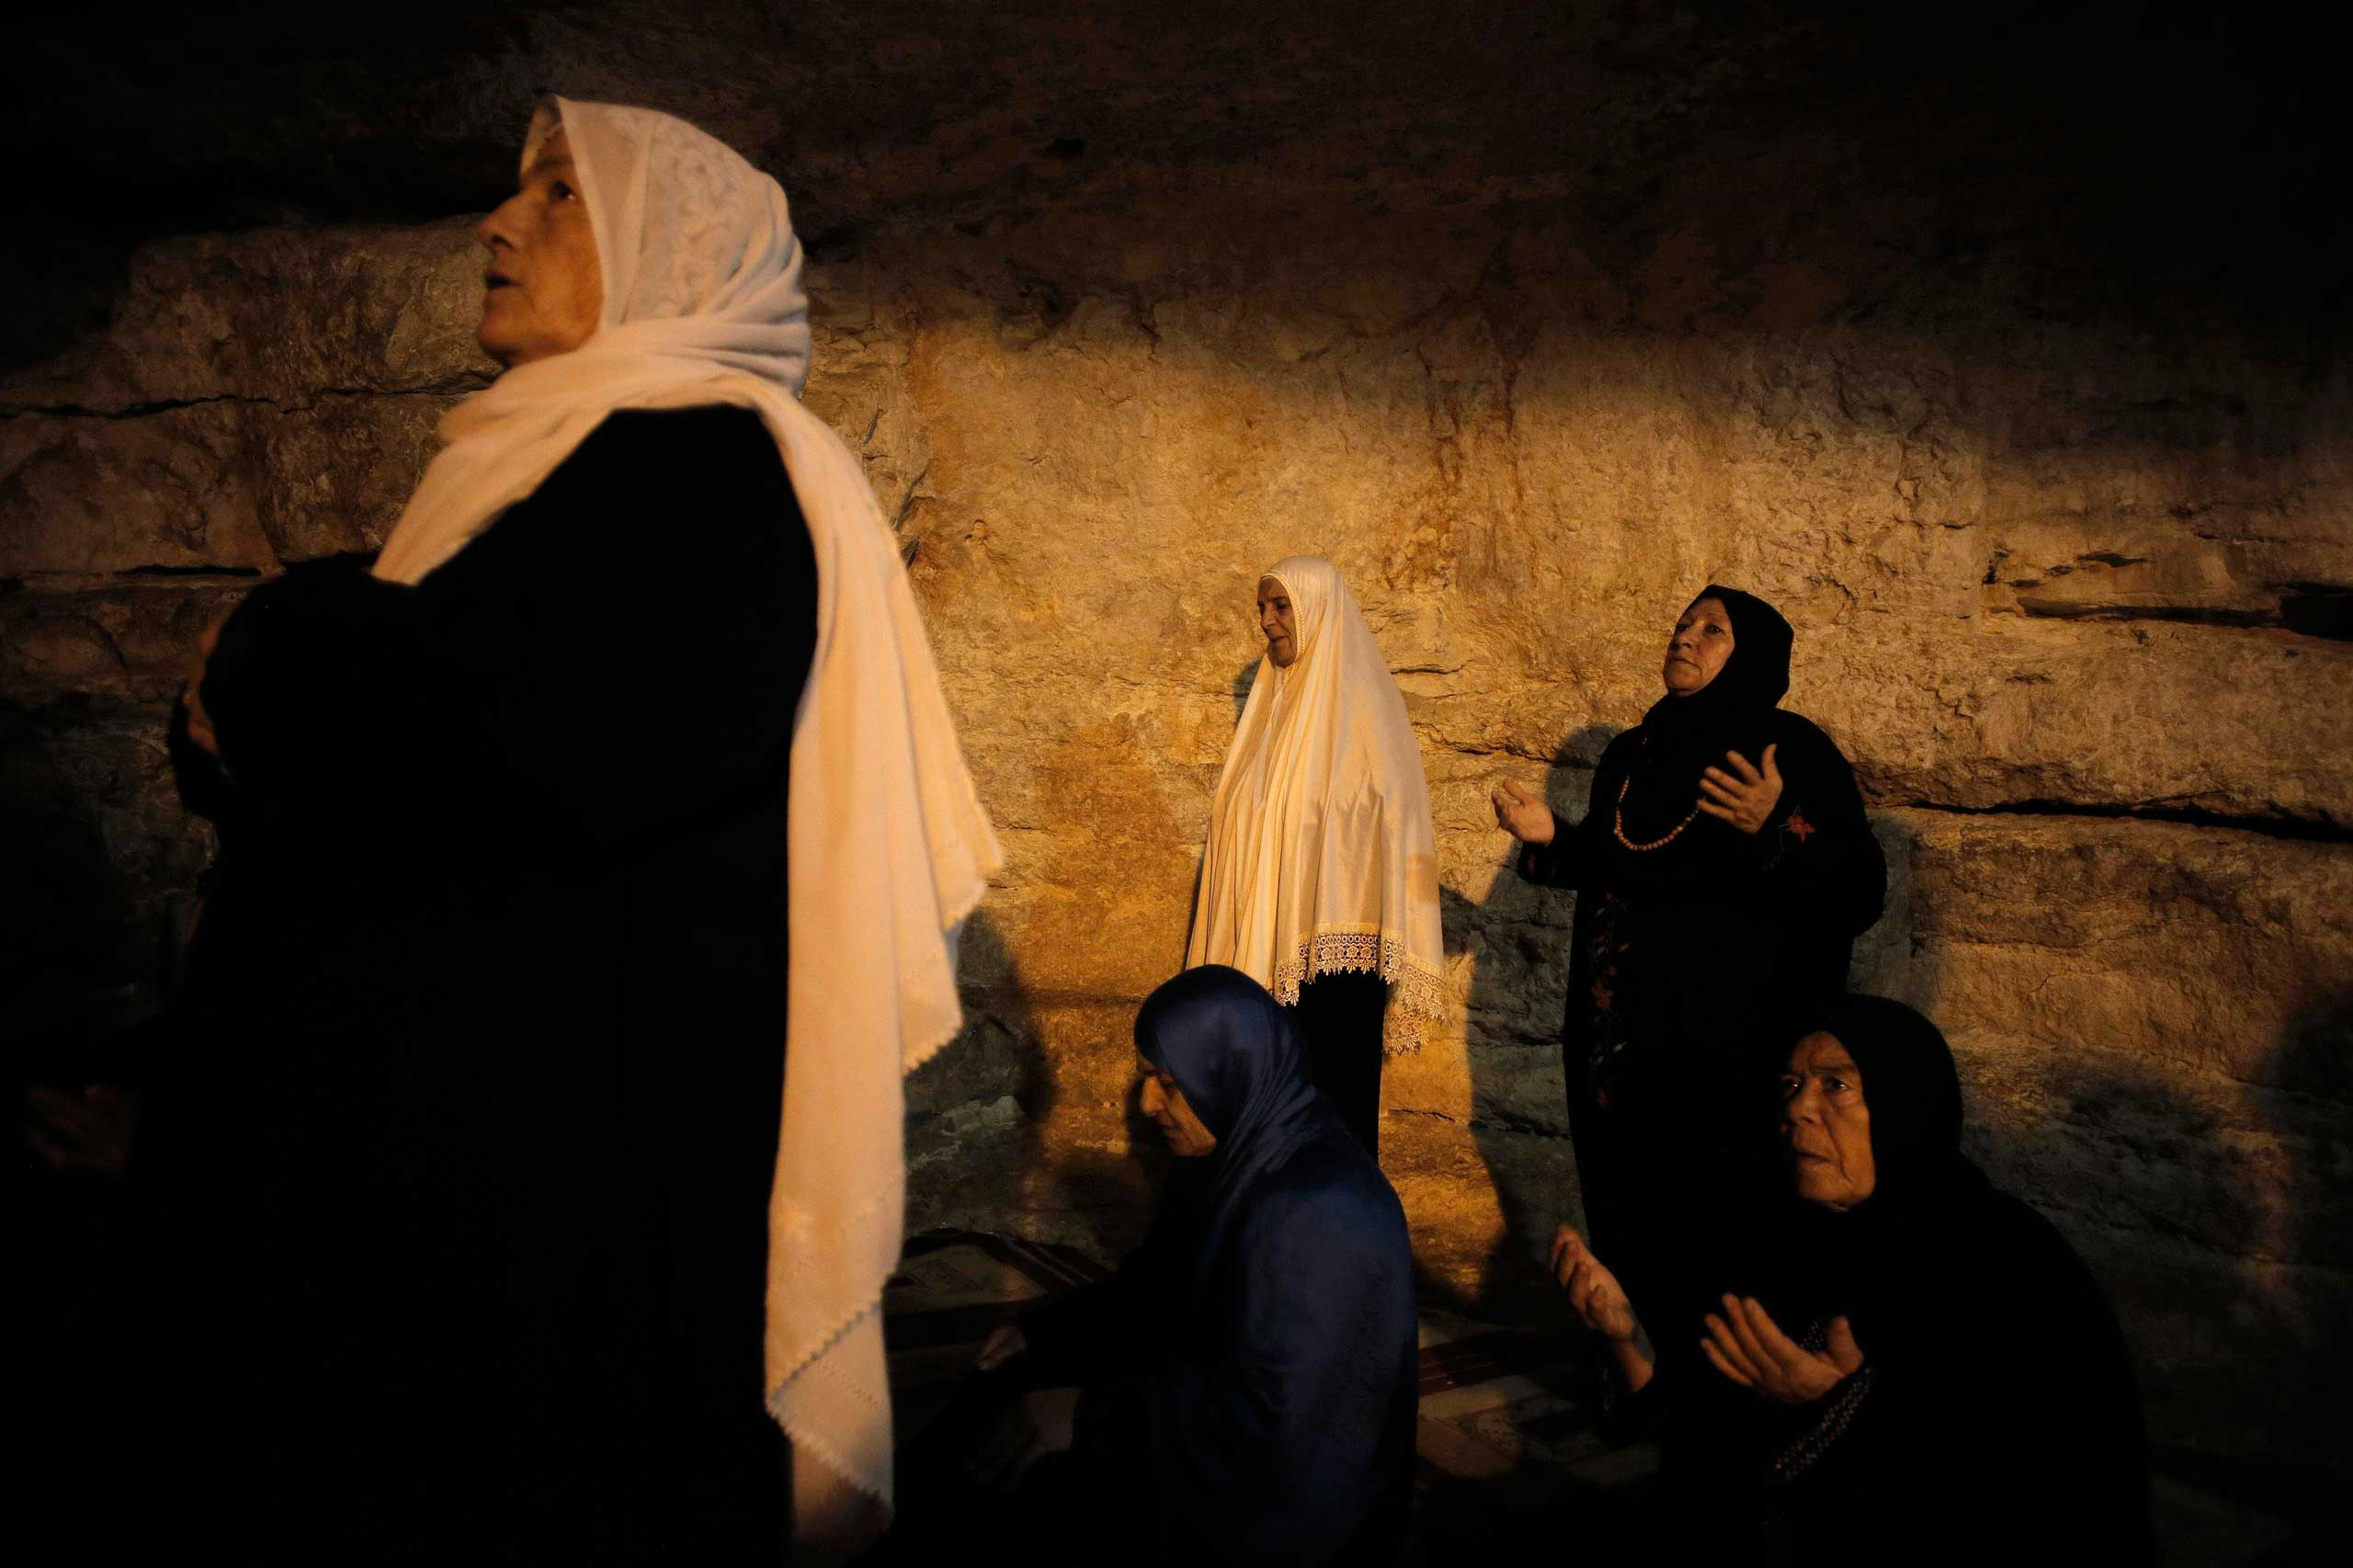 Oct. 5, 2014. Palestinian women from Gaza pray inside the Dome of the Rock during their visit at the compound known to Muslims as Noble Sanctuary and to Jews as Temple Mount in Jerusalem's Old City.